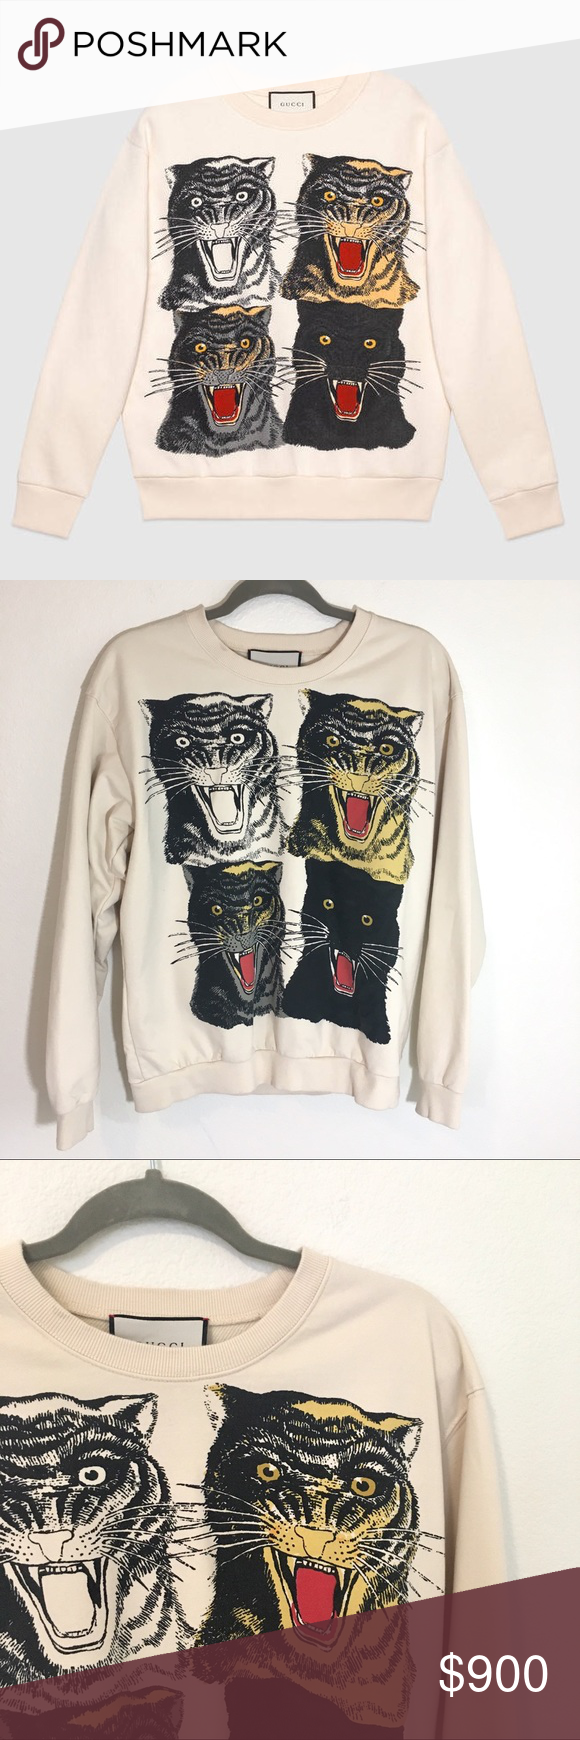 Authentic Gucci Tiger Face Sweatshirt Medium Sold Out Online And In Stores An Oversize Cotton Sweatshirt Wi Clothes Design Fashion Prints Cotton Sweatshirts [ 1740 x 580 Pixel ]